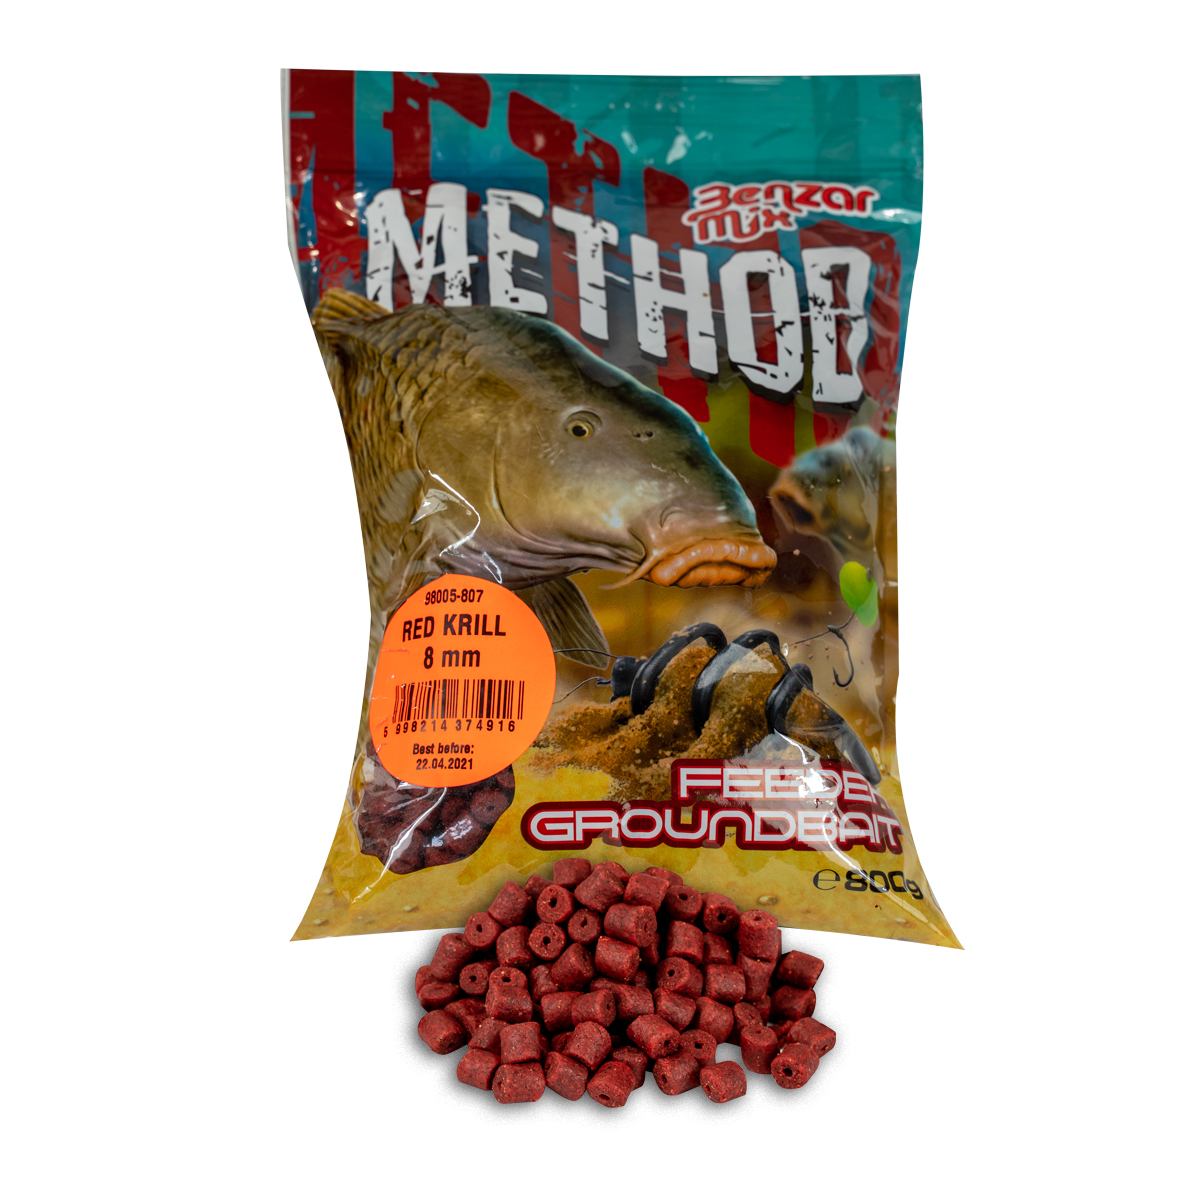 BENZAR MIX SERIA METHOD PELLET 8 MM RED KRILL 800GR